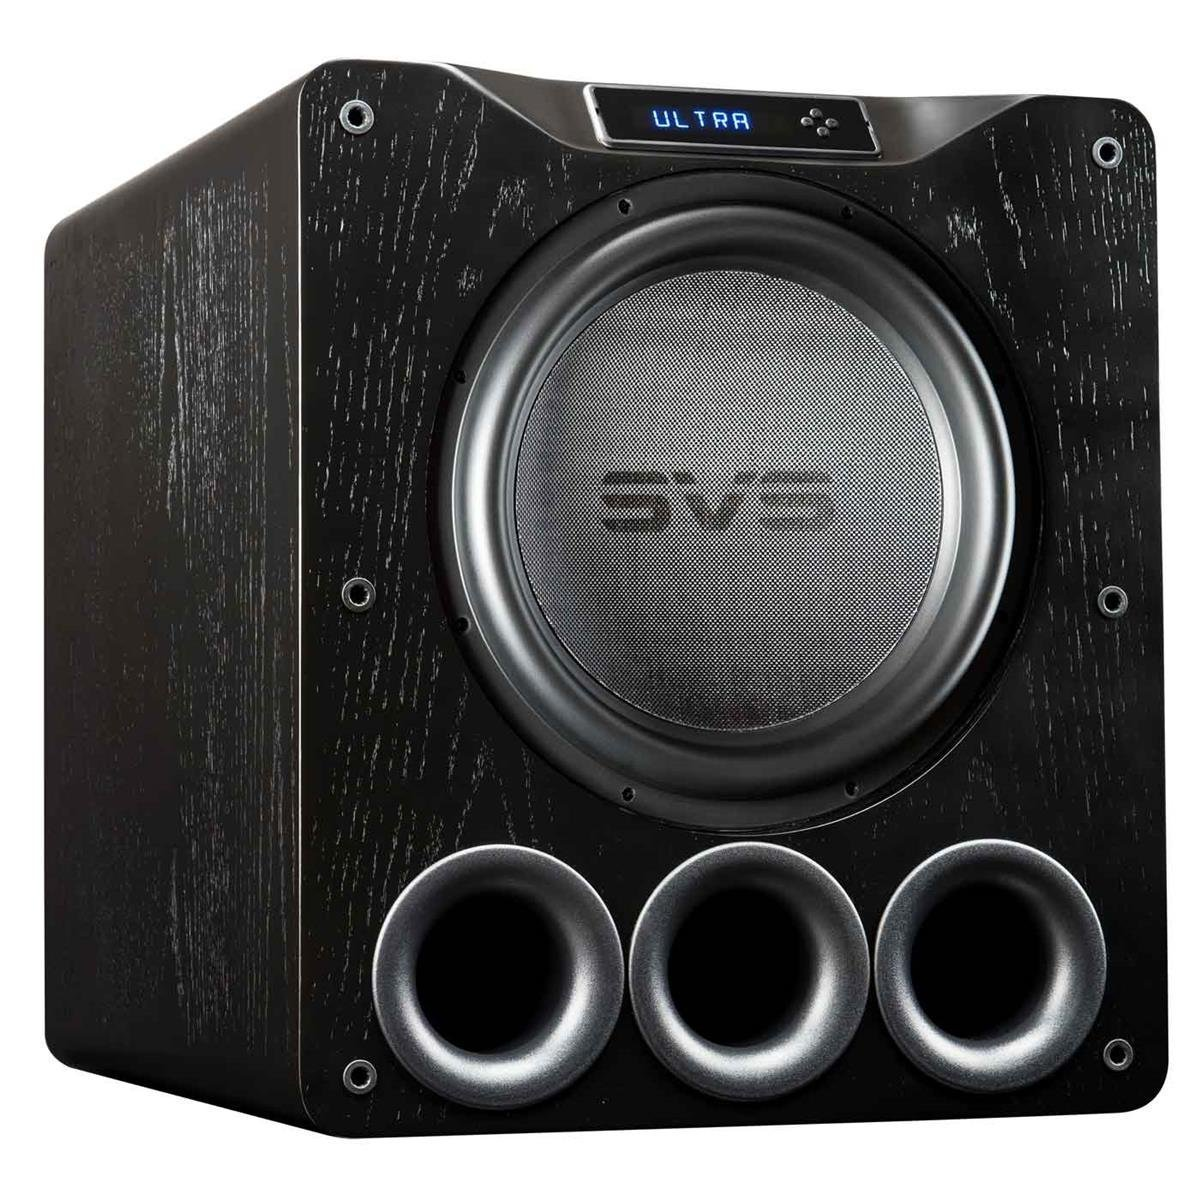 Svs Pb16 Ultra Subwoofer Black Oak 16 Inch Driver 12quot 1500w Active Car Sub Bass Box Wiring Kit And 1500 Watts Rms Dsp App Control Ported Cabinet Home Audio Theater